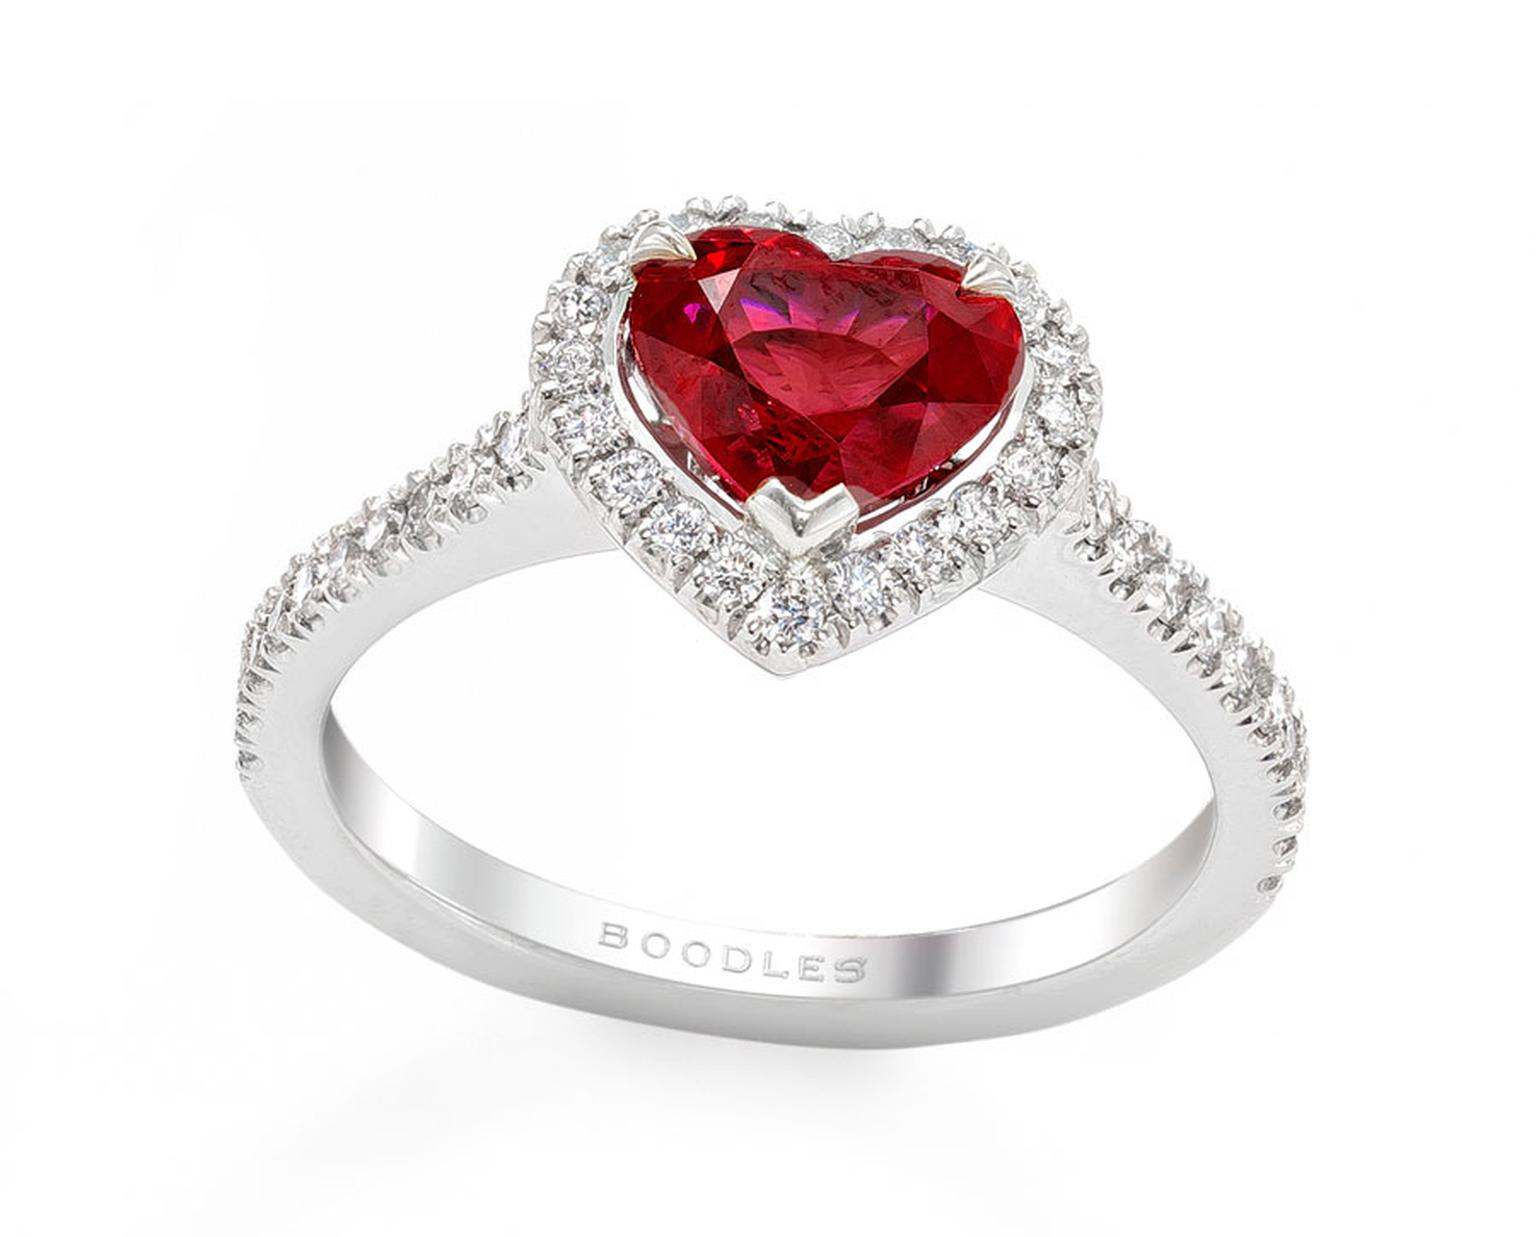 Boodles-pages64-65_5-VALENTINES.jpg